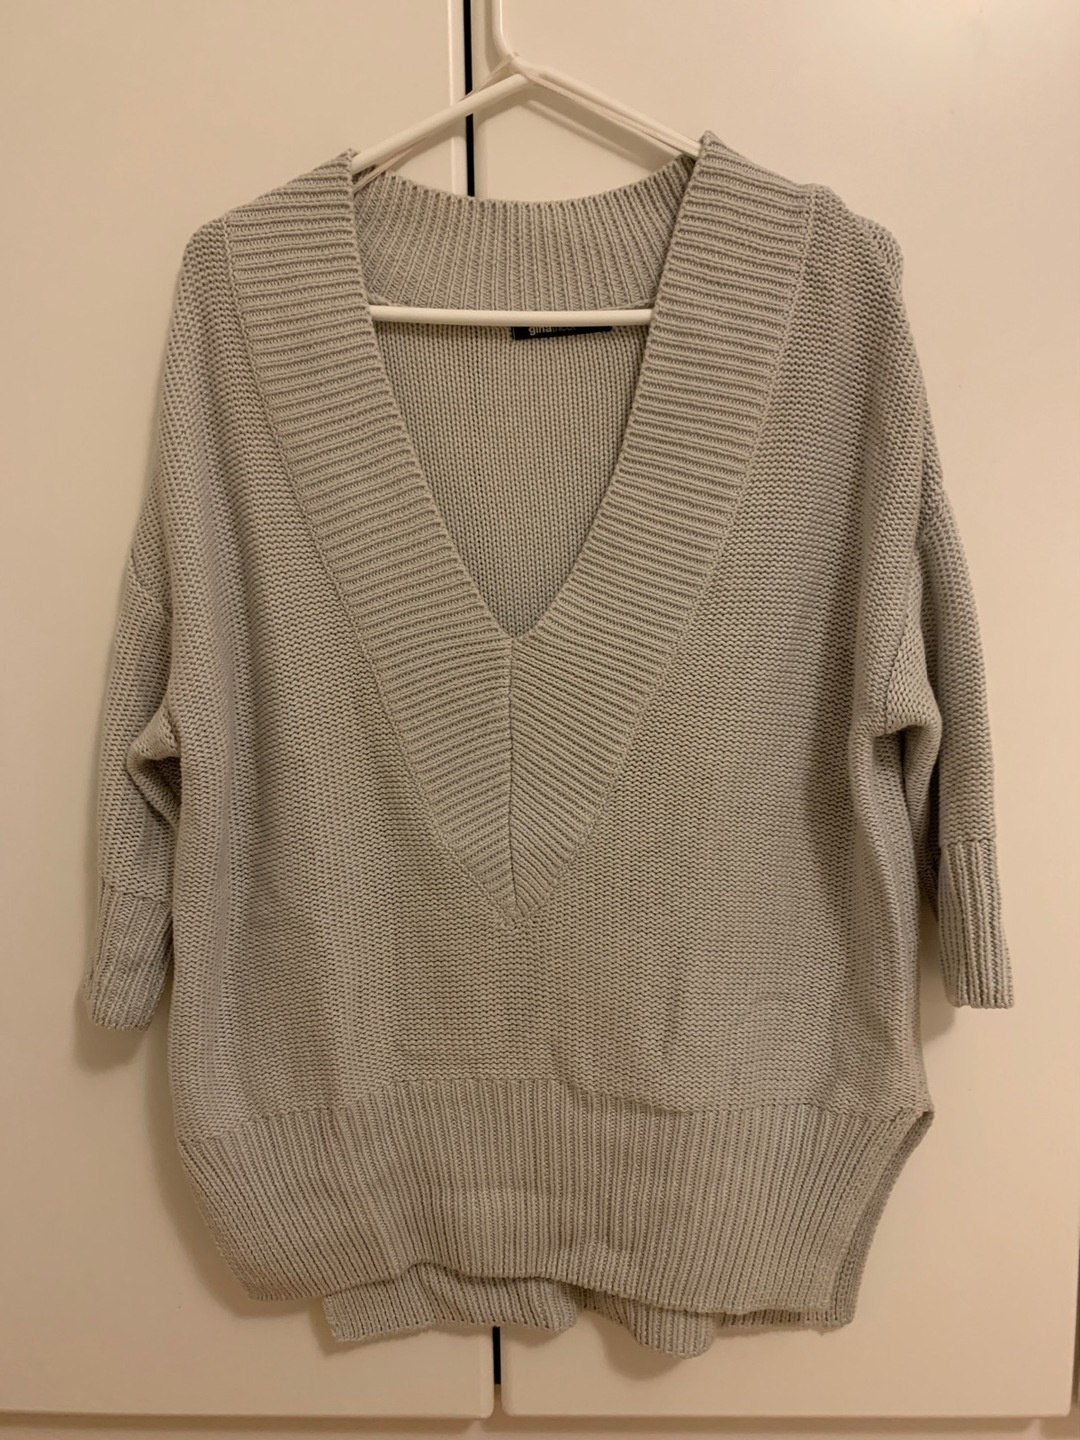 Women's jumpers & cardigans - GINA TRICOT photo 2